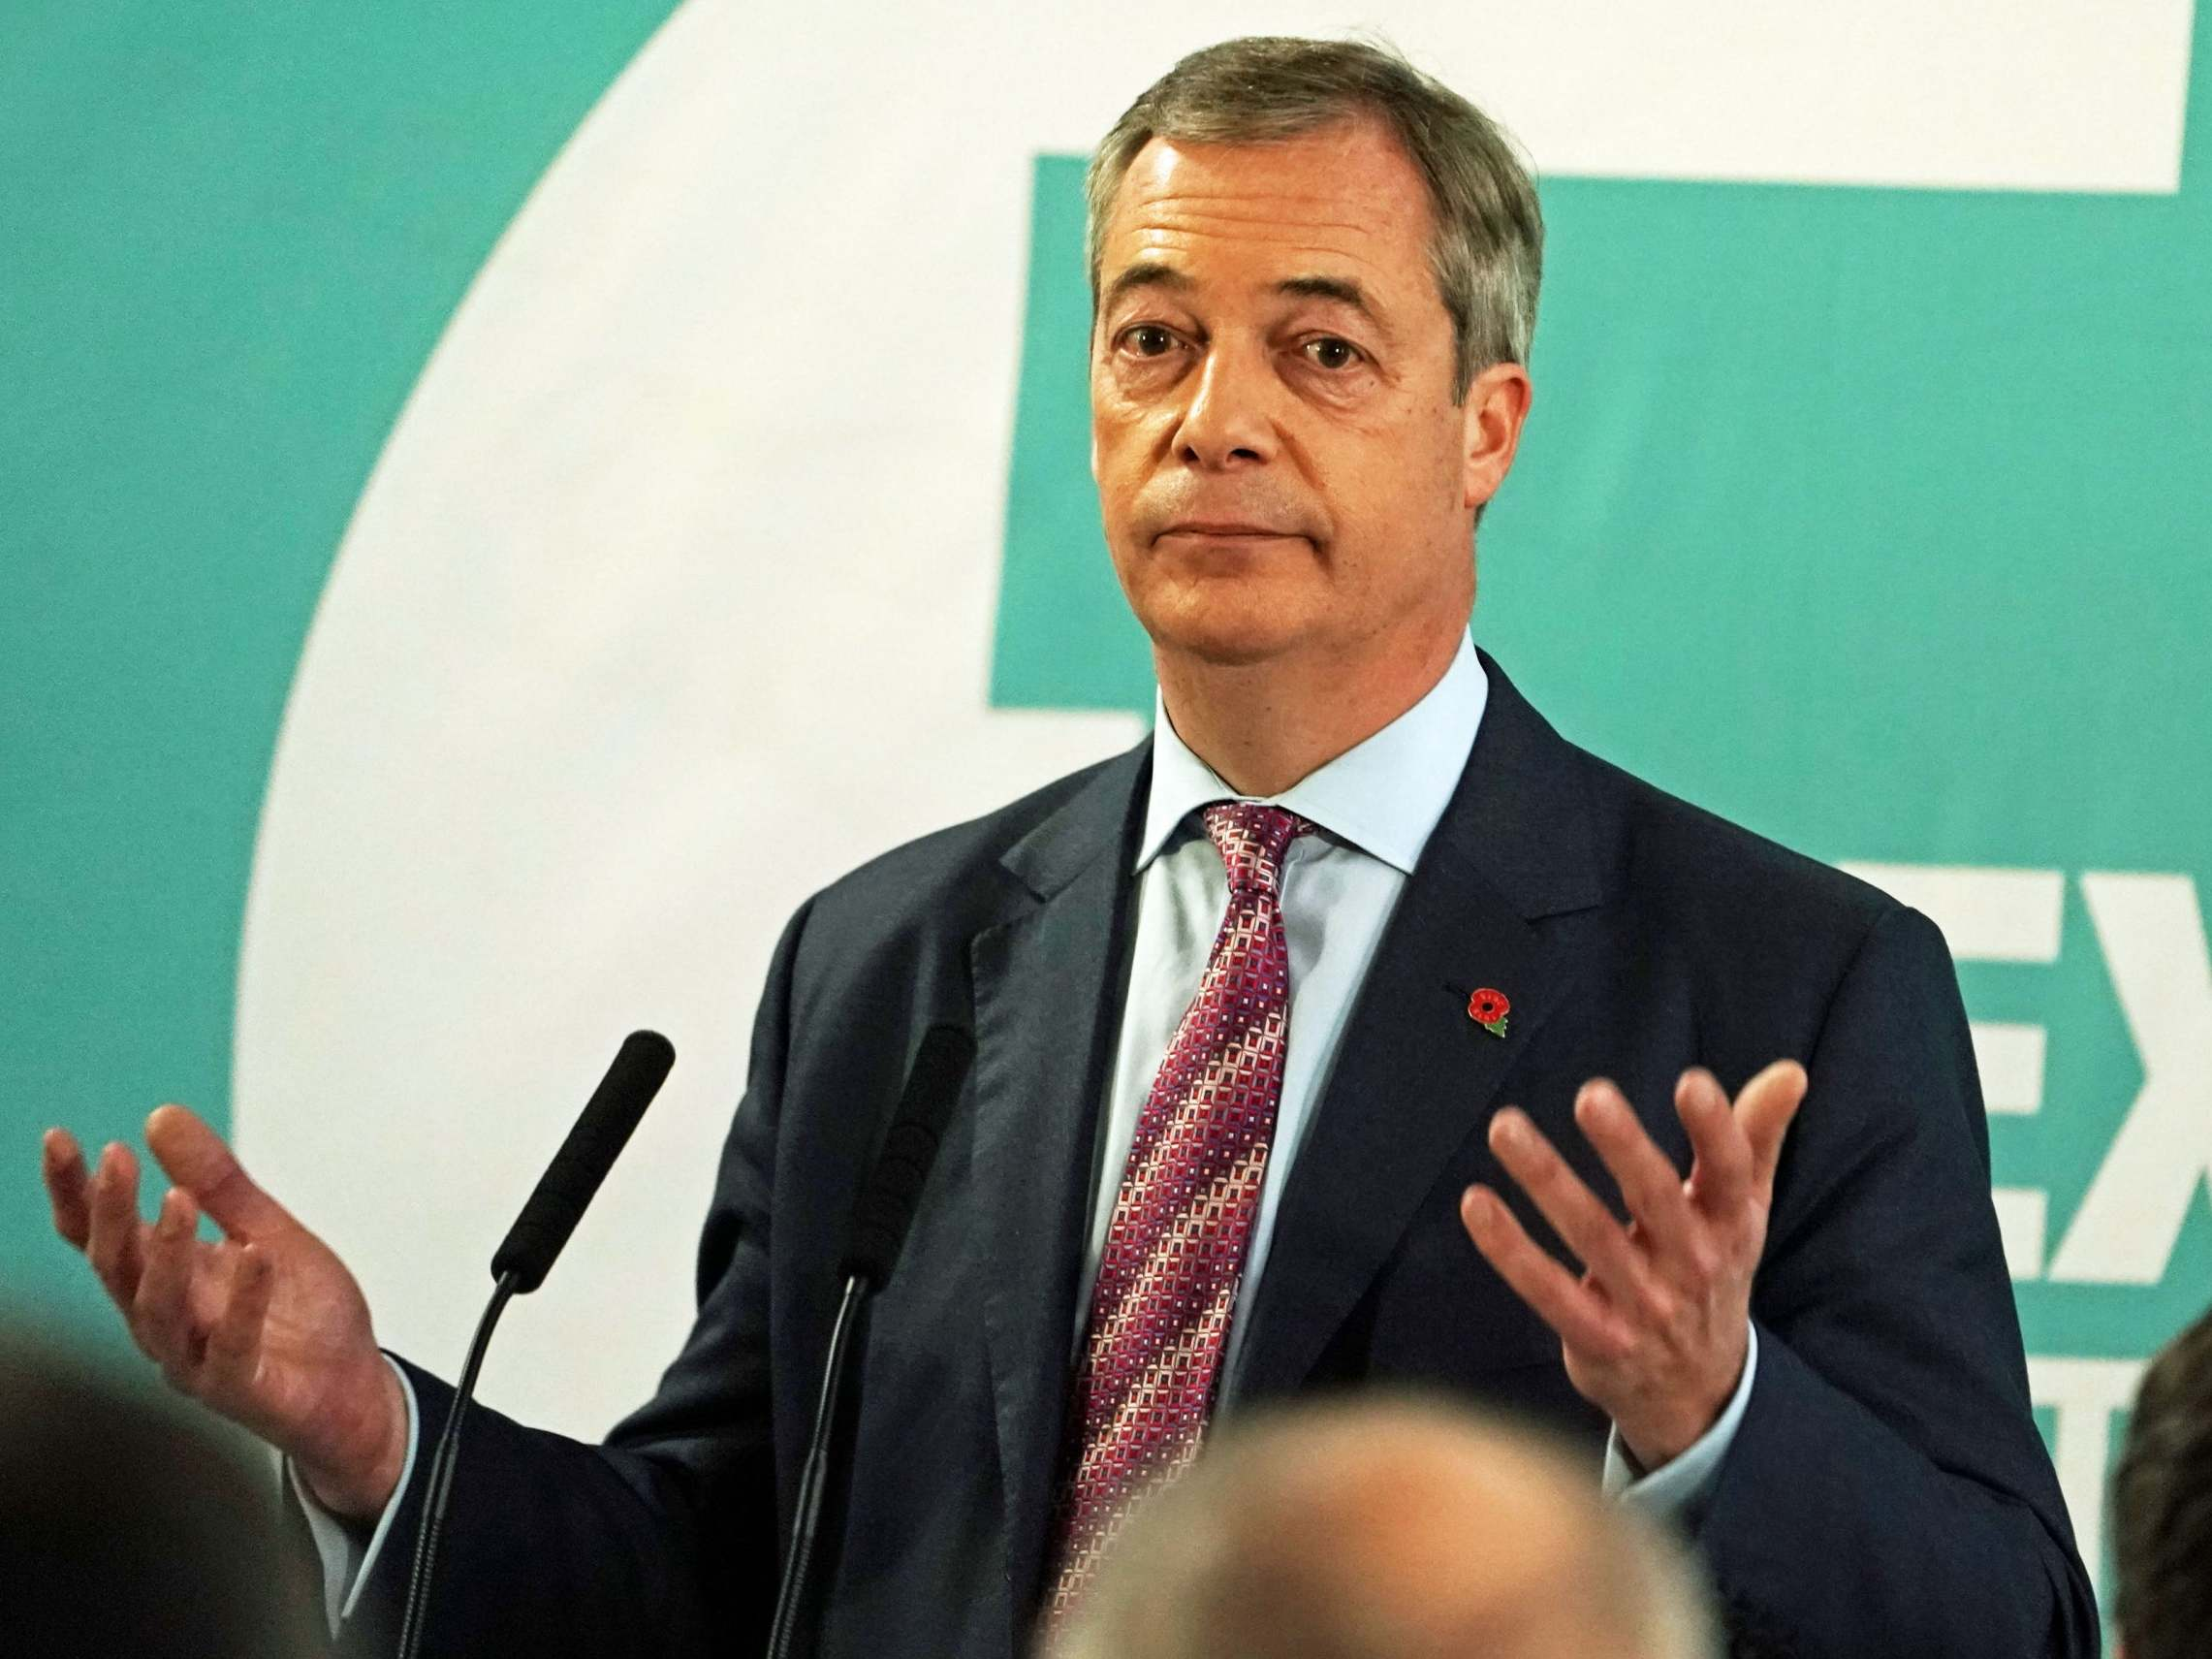 Brexit Party candidates furious after Nigel Farage announces they cannot contest 317 seats